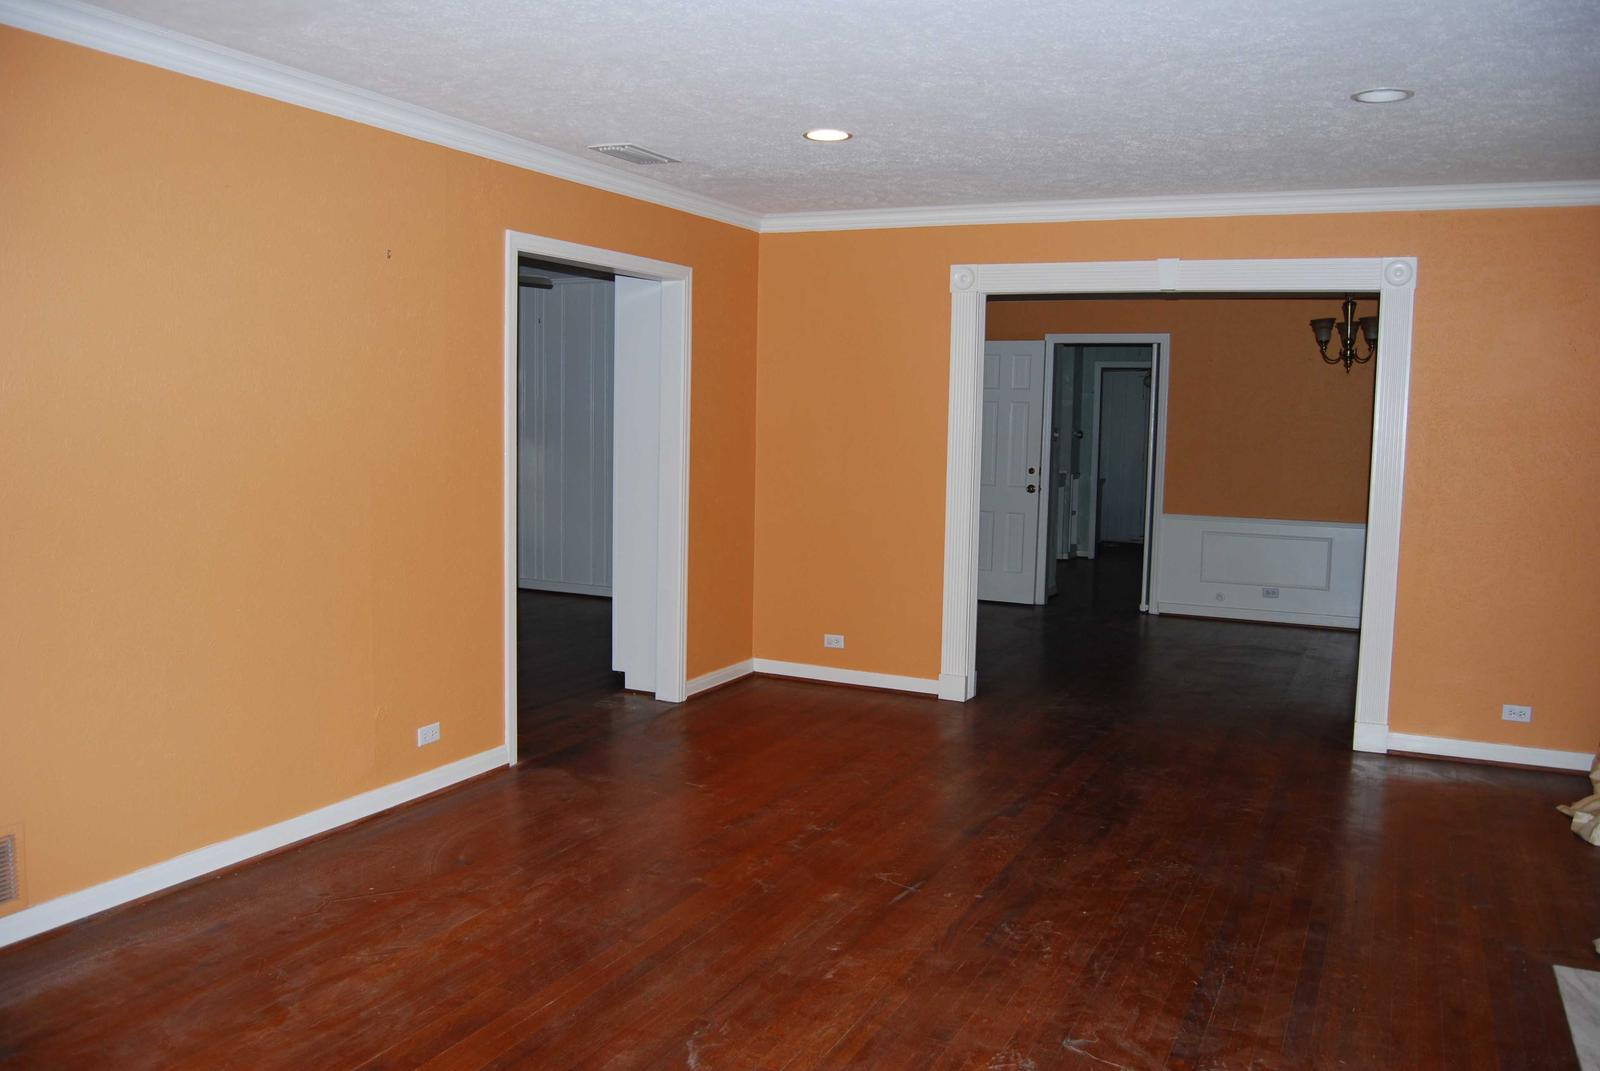 pics and help suggest wall color hardwood floors paint ceiling. Black Bedroom Furniture Sets. Home Design Ideas